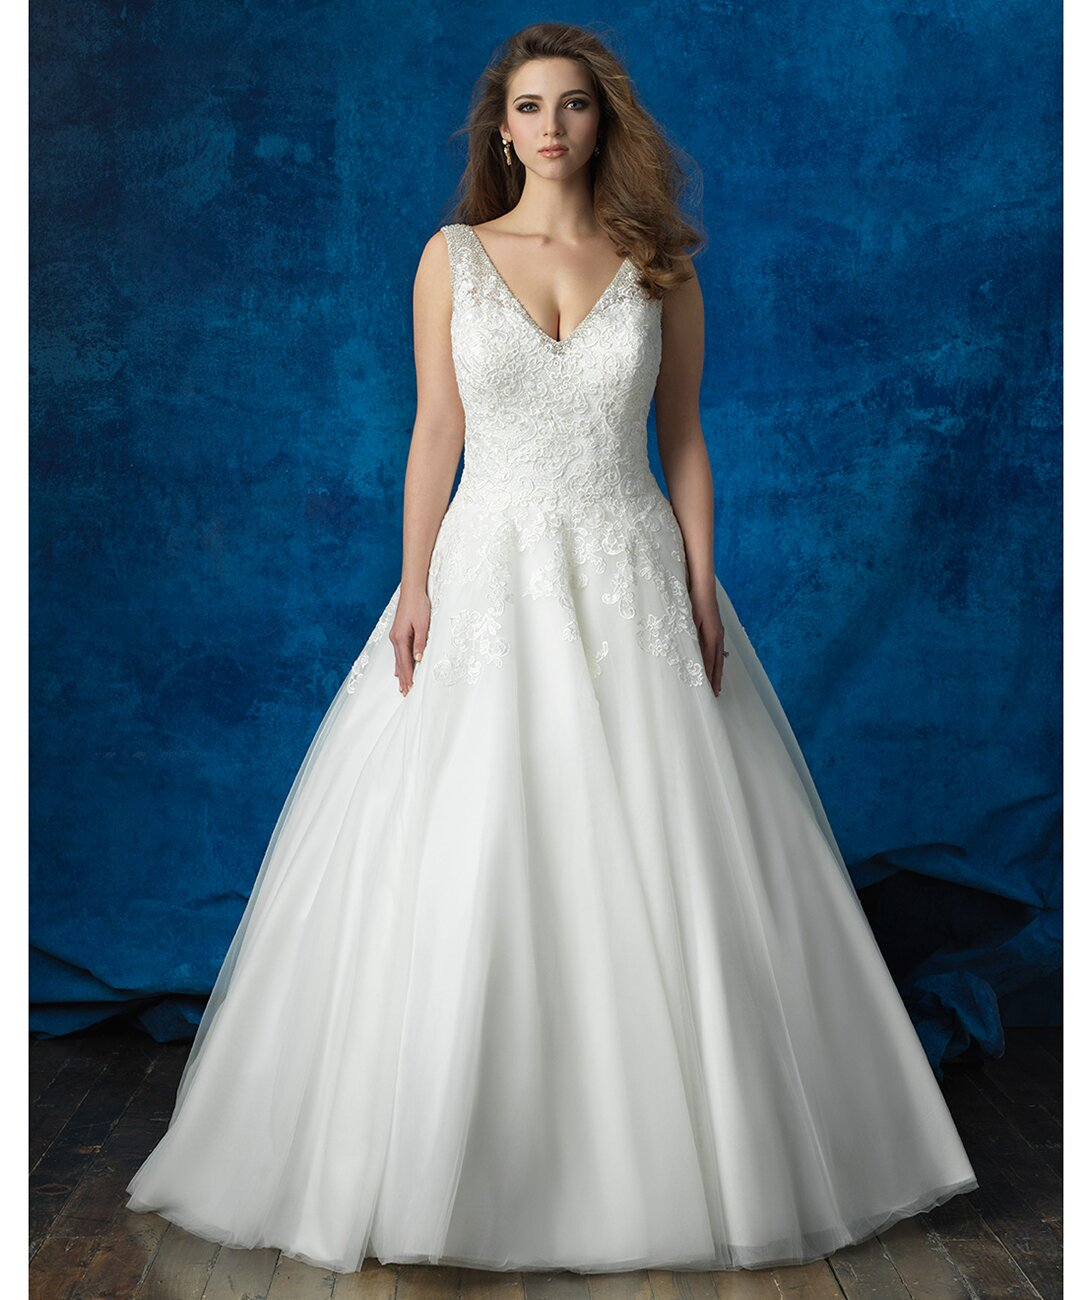 77c9790f479 5 Gorgeous Full Figured Wedding Gowns